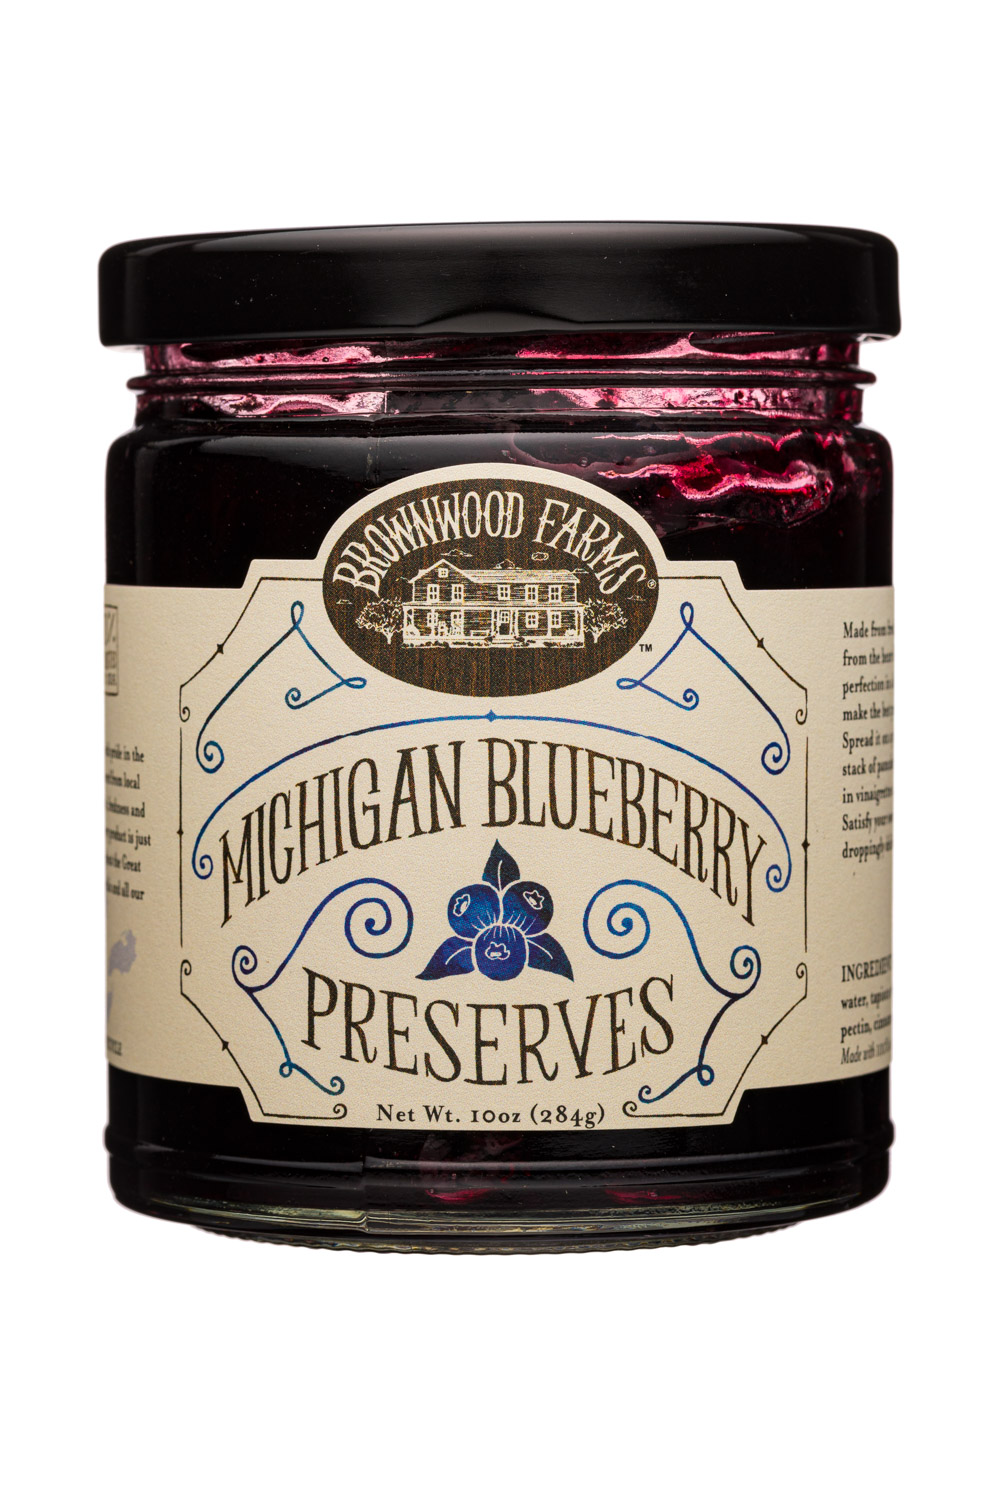 Michigan Blueberry